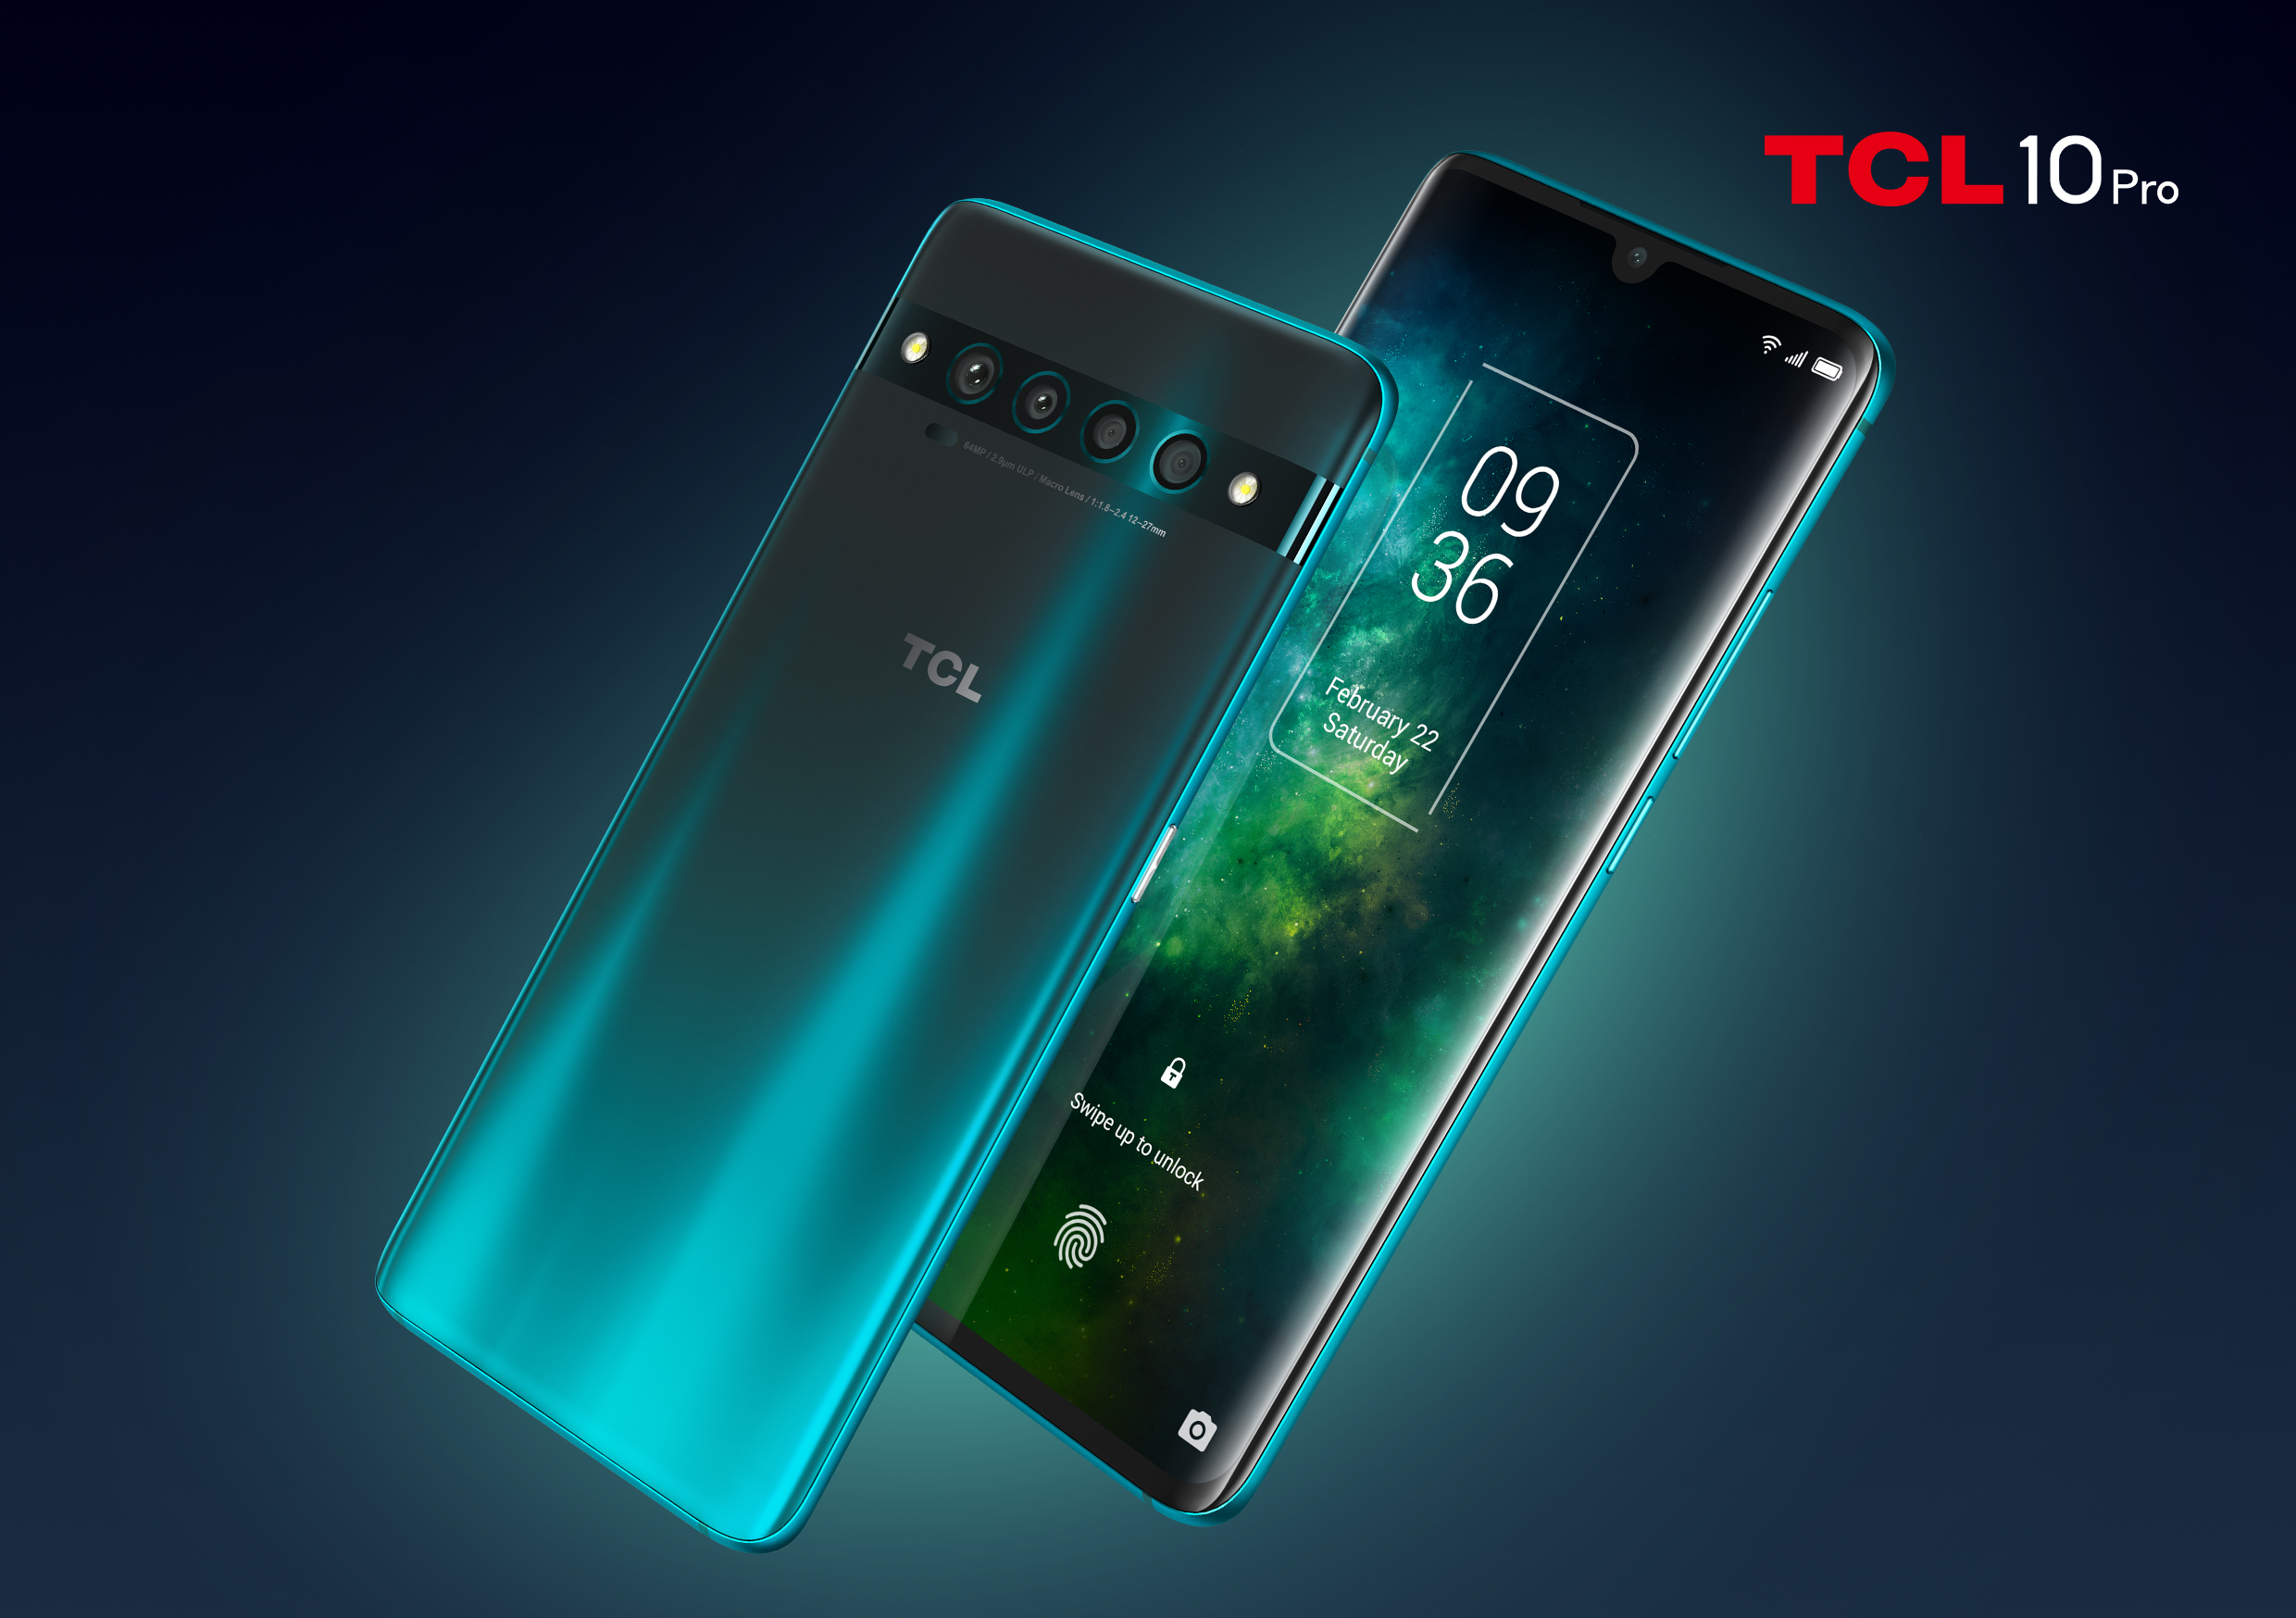 TCL 10 Pro Press image 03 Father's Day Gift Ideas For The Tech Savvy Dad